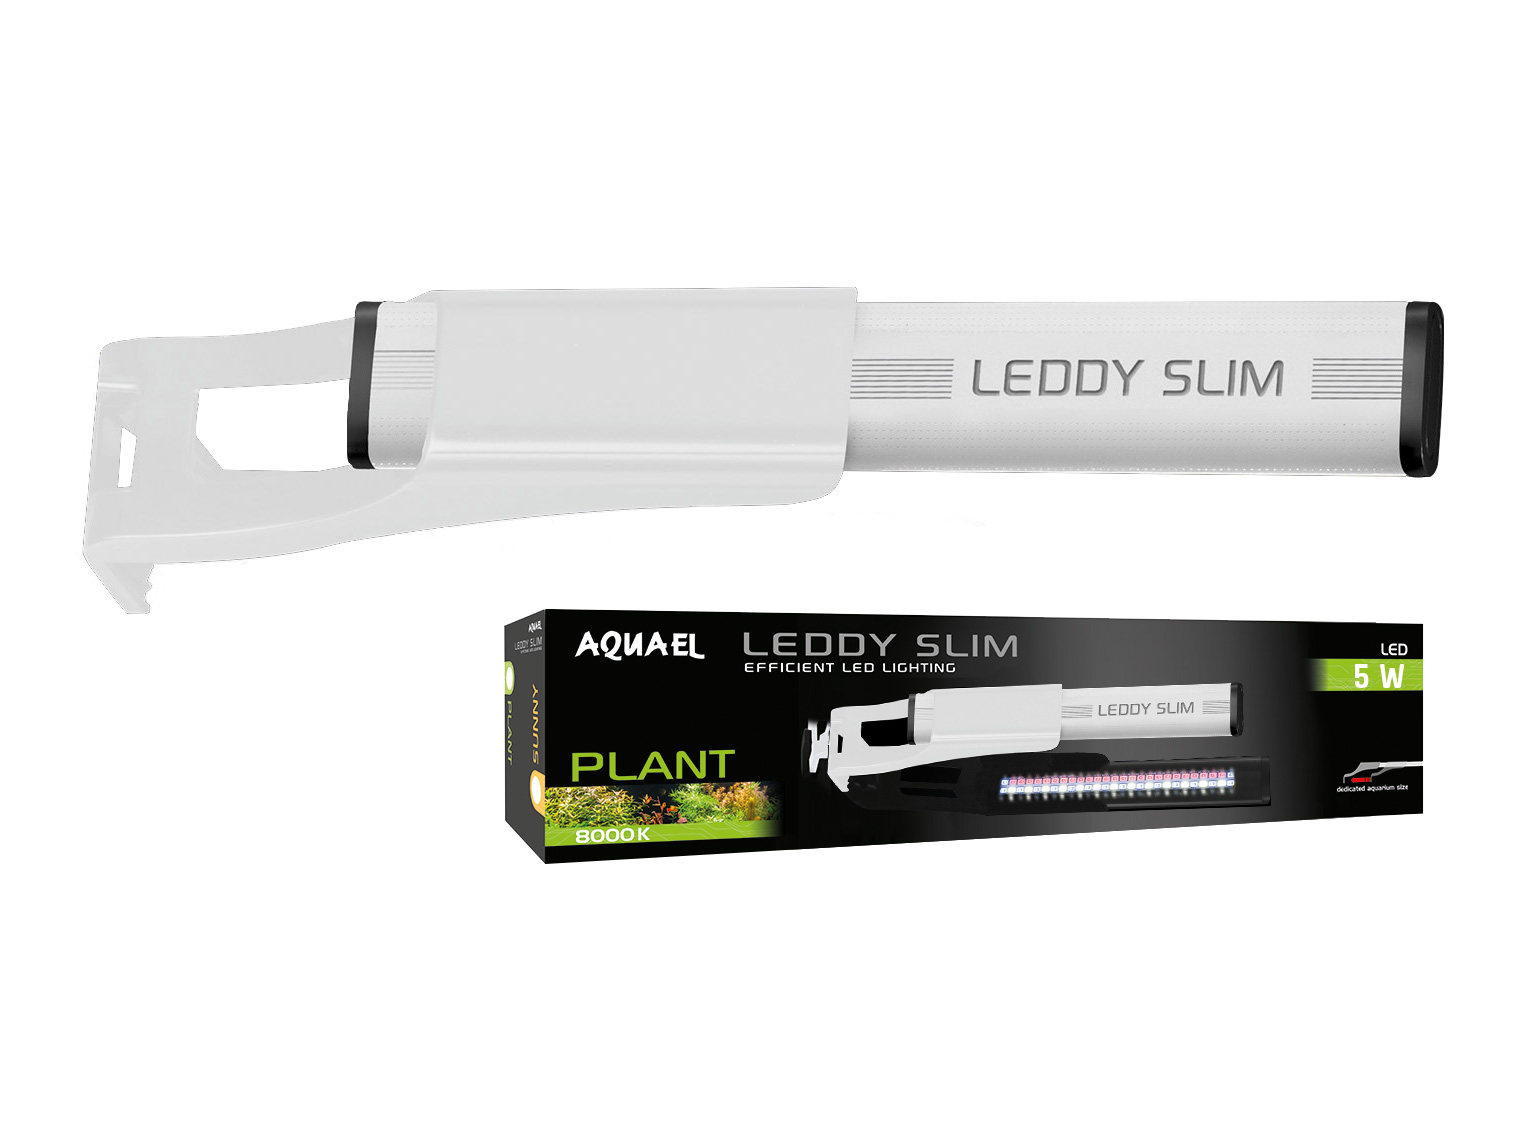 Aquael LEDDY SLIM PLANT 5W